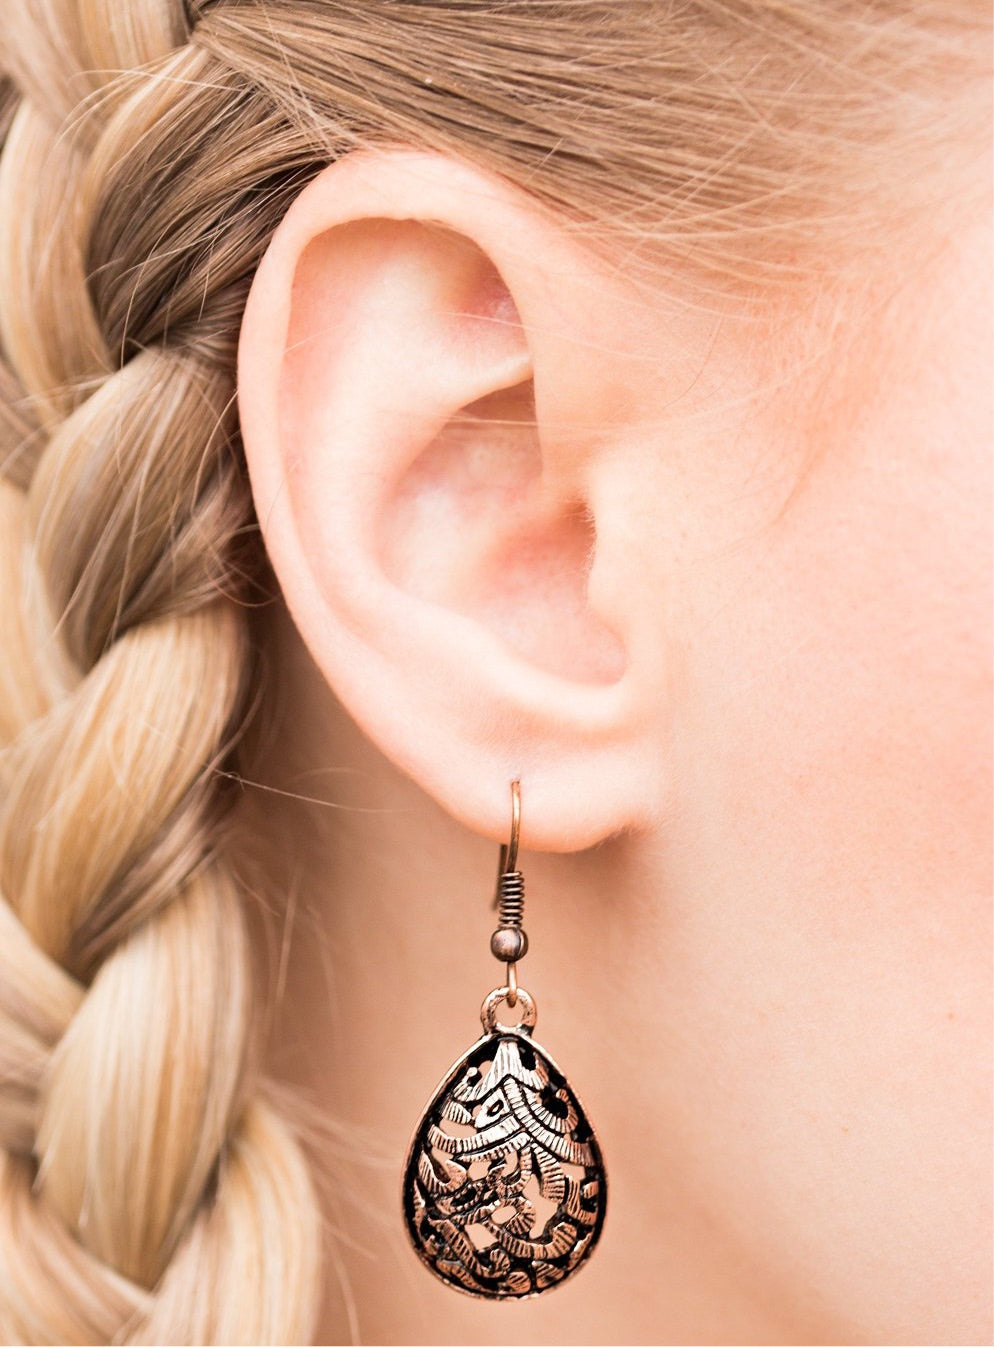 Etched in shimmer, copper vine-like filigree climbs a copper teardrop for a tribal inspired look. Earring attaches to a standard fishhook fitting.  Sold as one pair of earrings.  Always nickel and lead free.